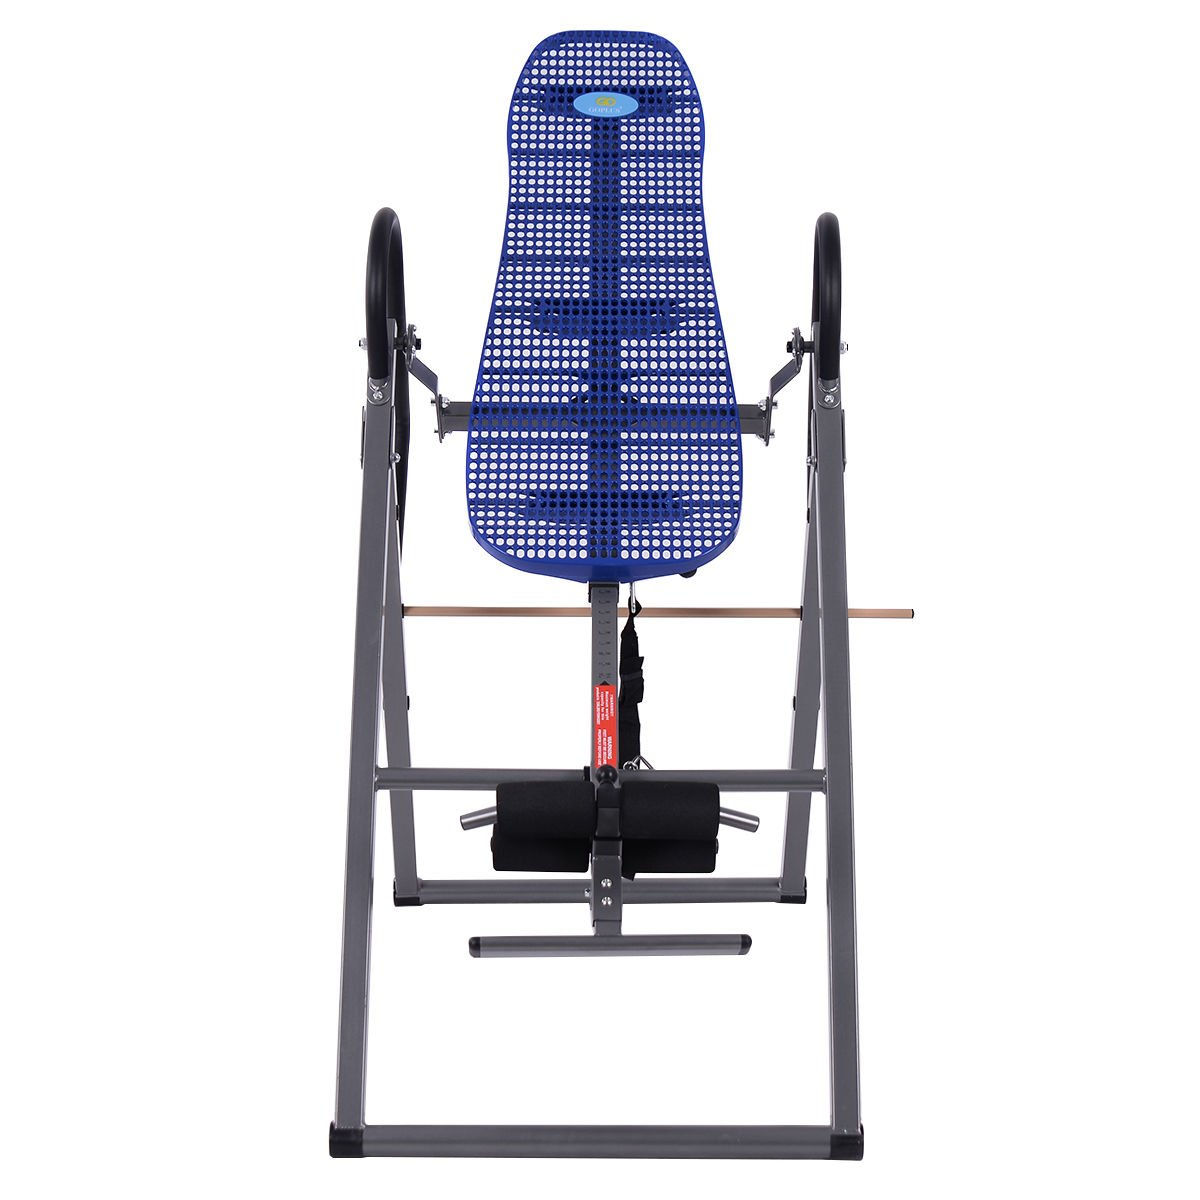 New Foldable ABS Inversion Table Gravity Therapy Back Pain Fitness Reflexology Blue by MTN Gearsmith (Image #2)